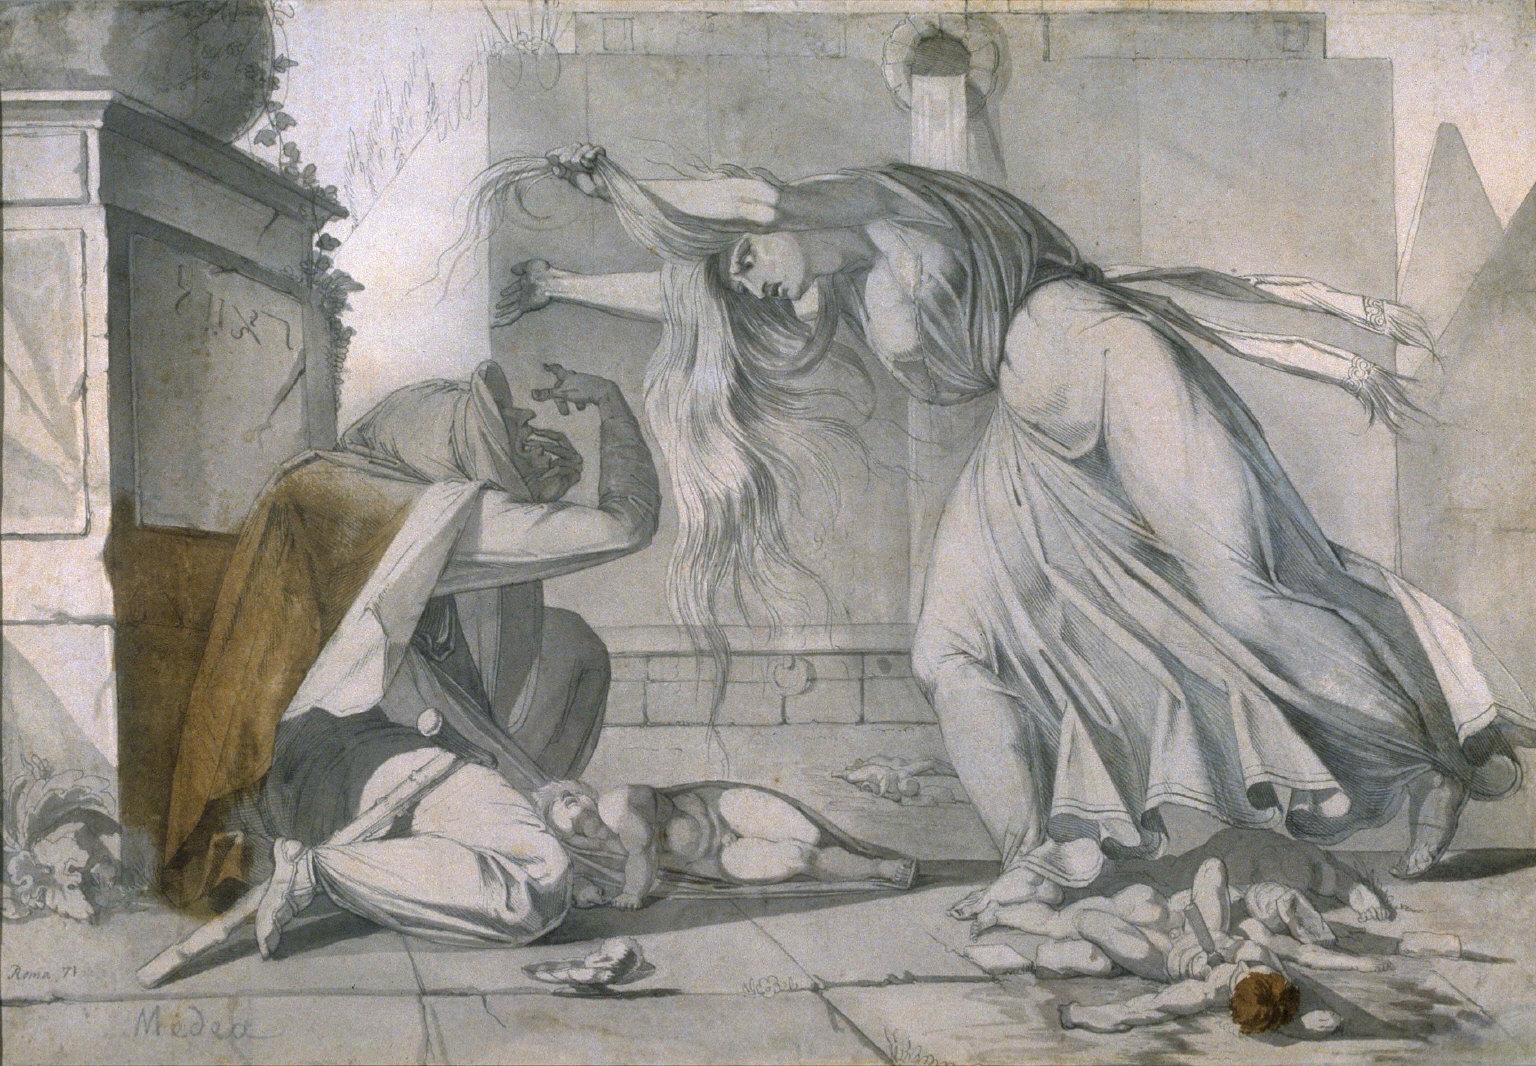 [Bereaved Mother Mourning After the Massacre of the Innocents, An Assassin Fleeing]